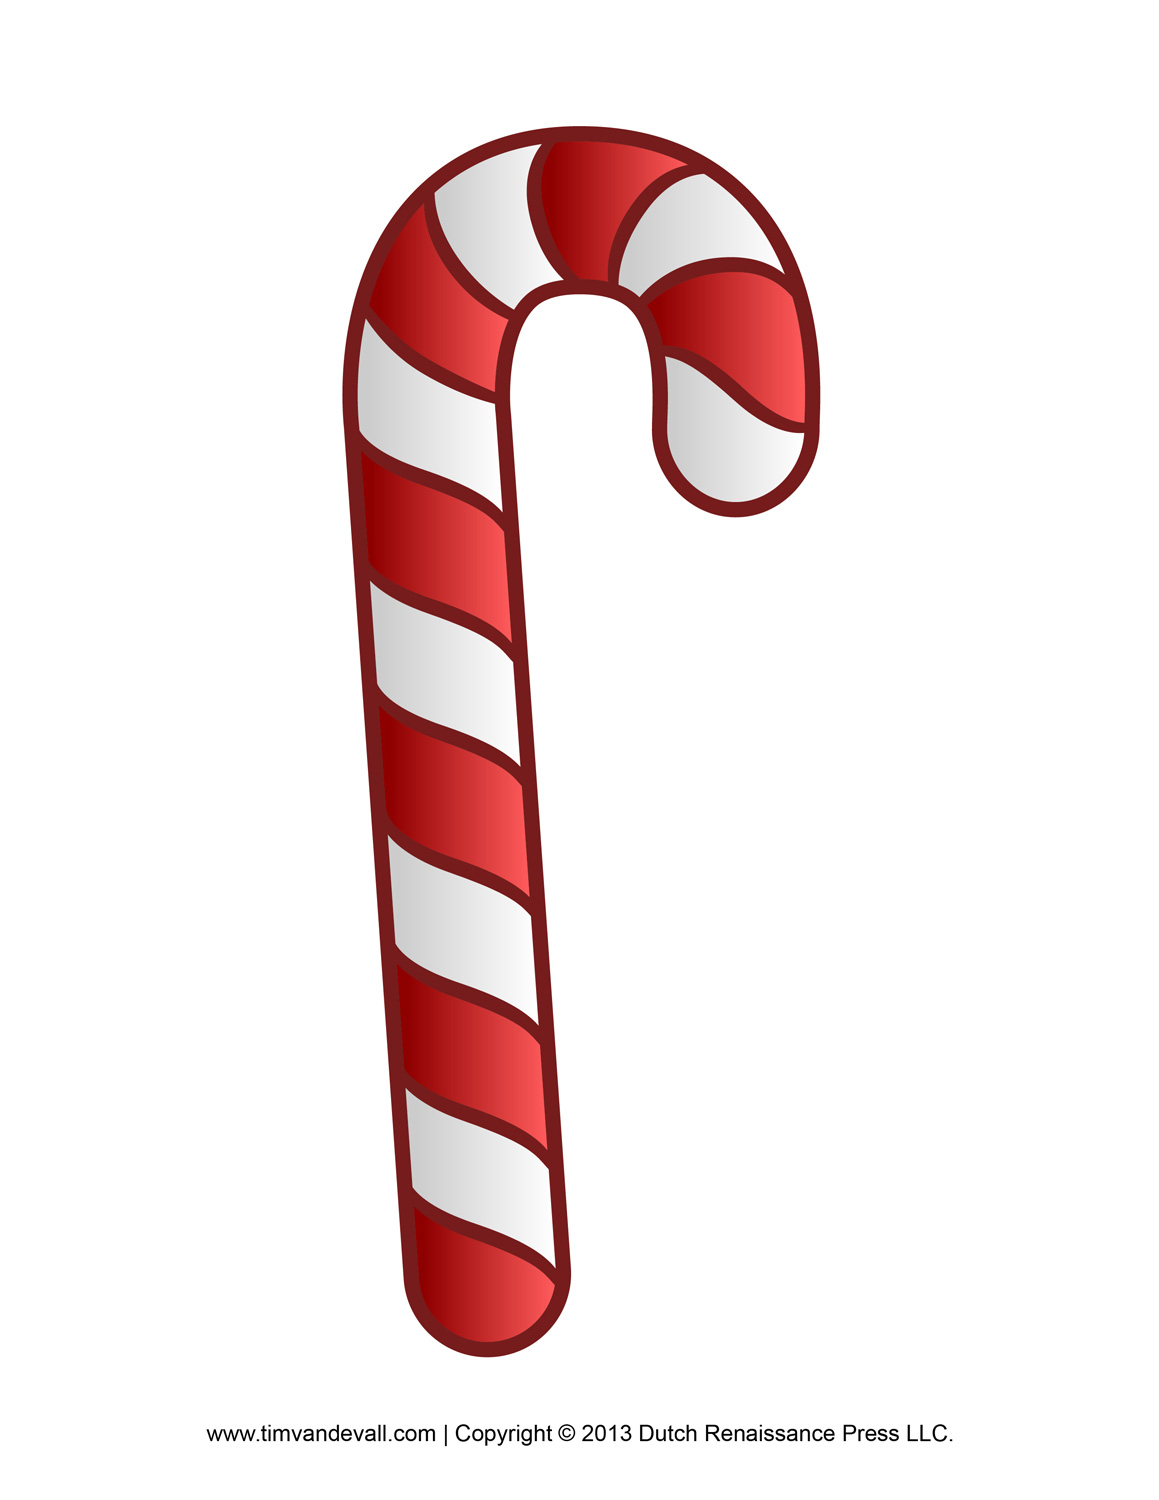 Cartoon Candy Cane Candy cane clipart set 1